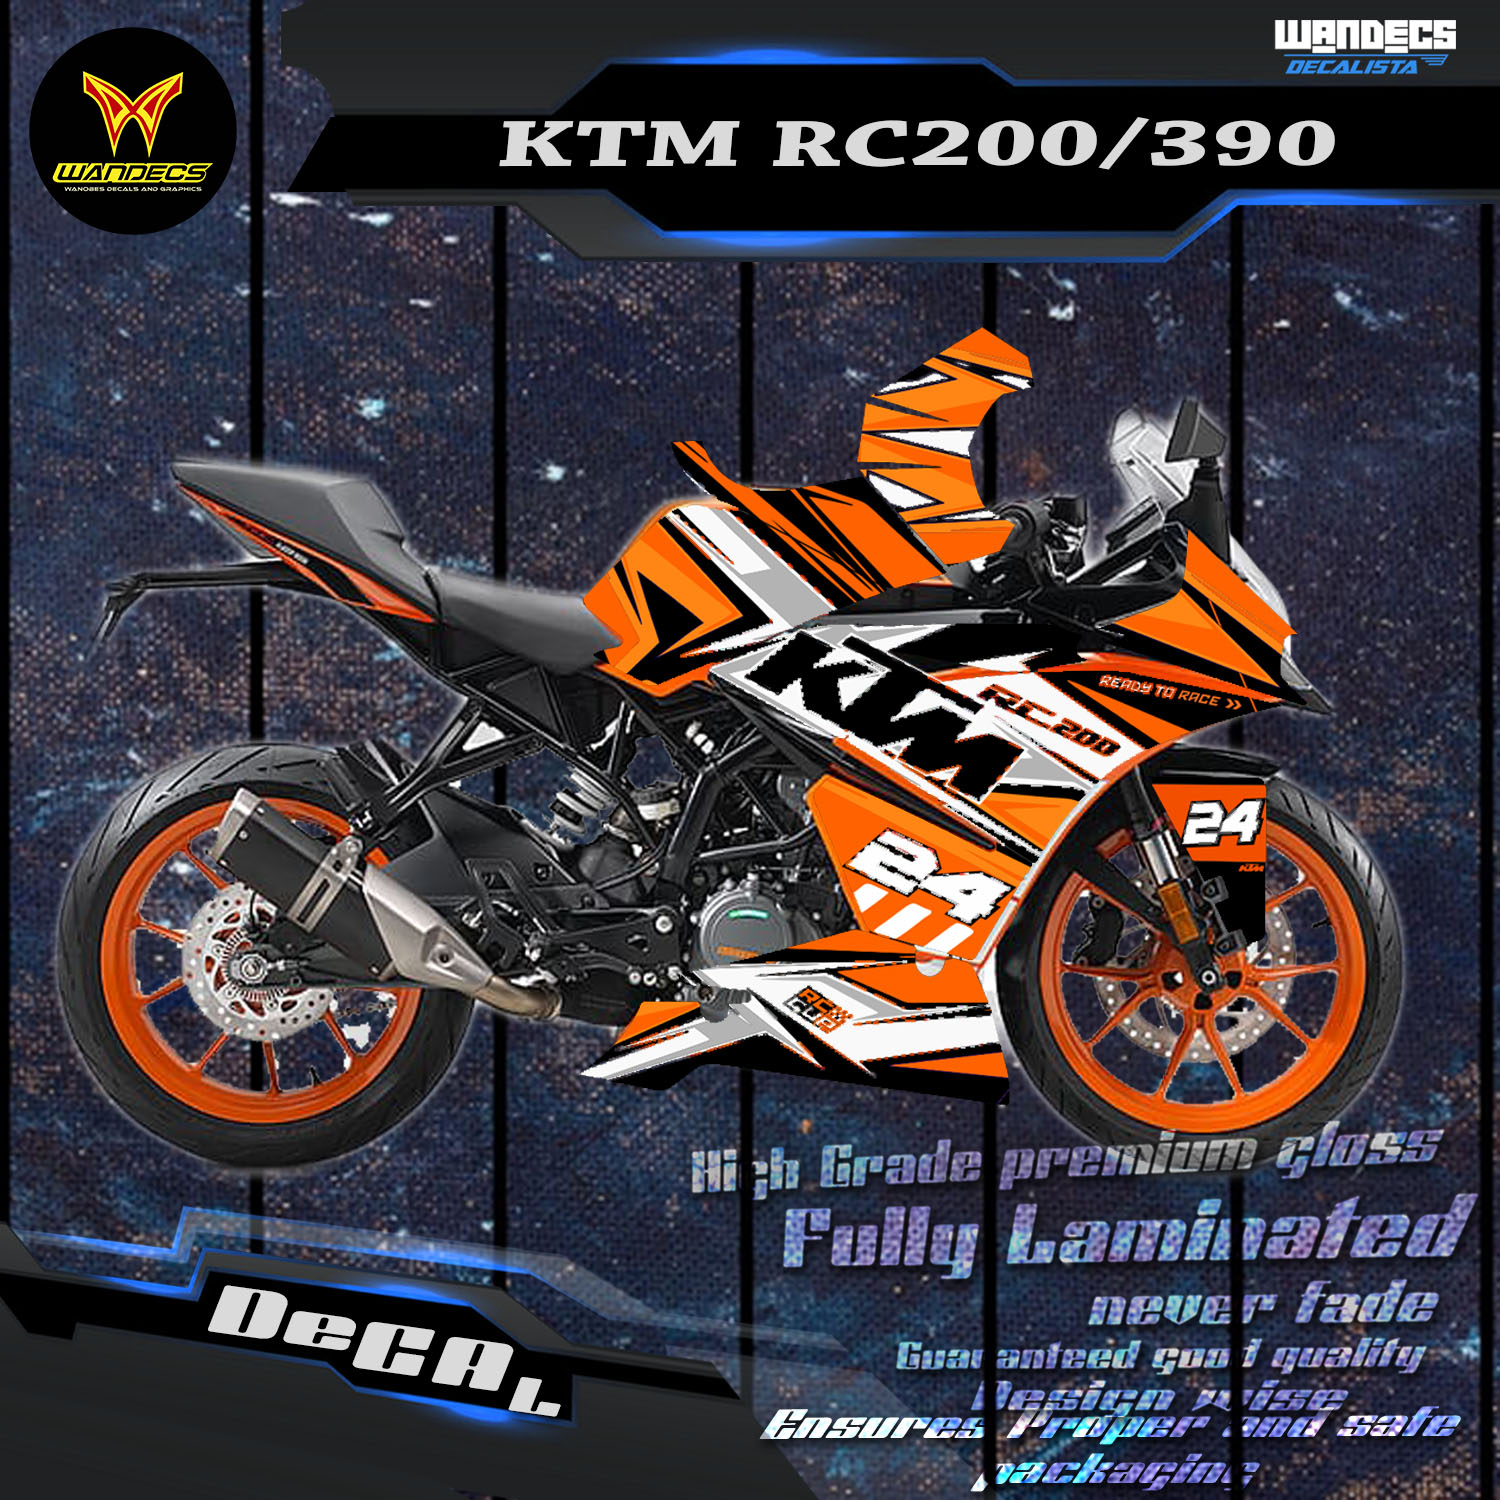 Ktm Rc 200 390 Orange Buy Sell Online Decals Emblems With Cheap Price Lazada Ph